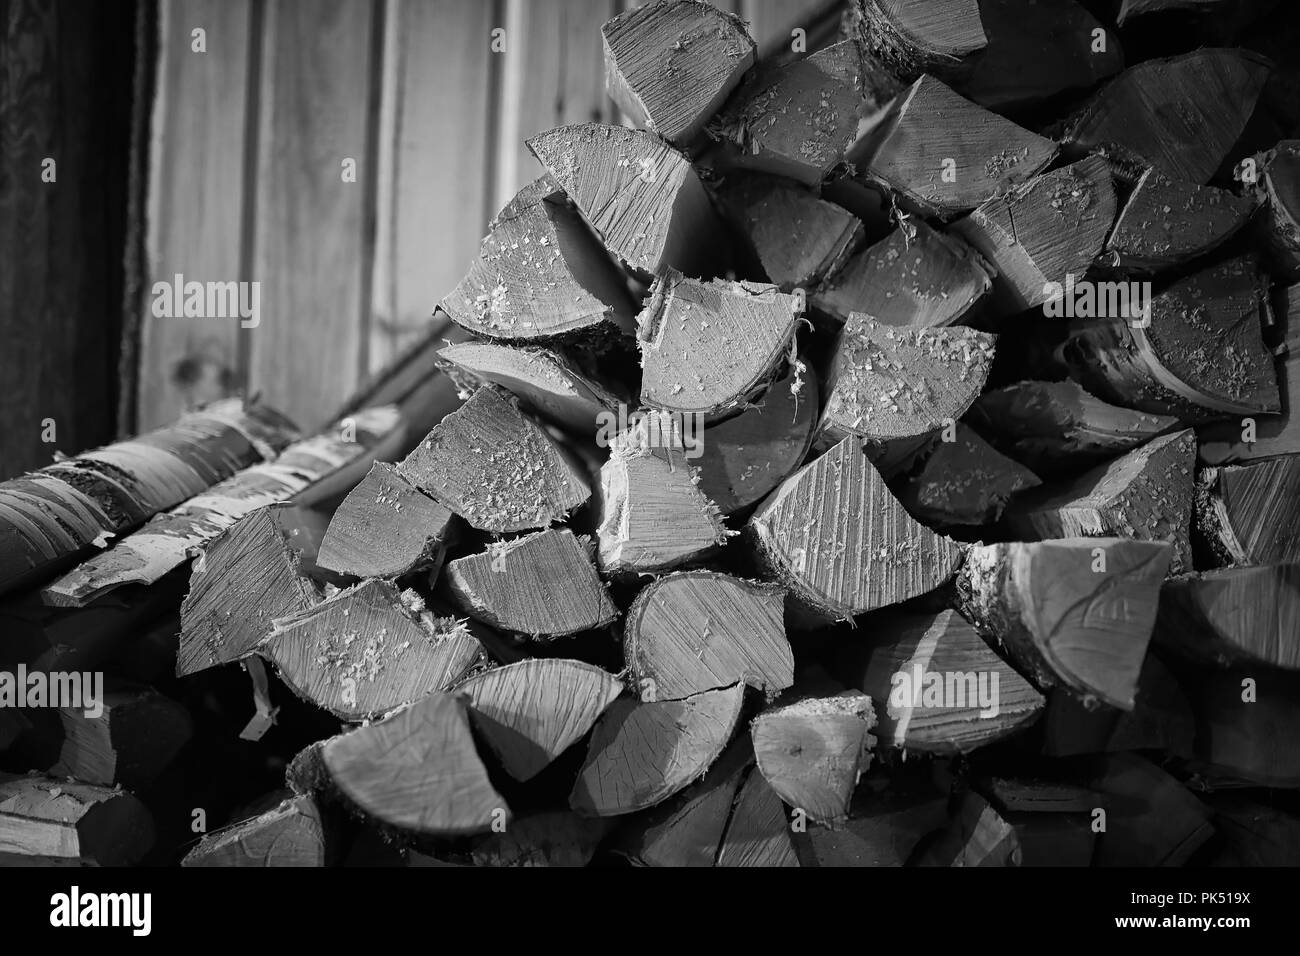 Wood burning stove. Firewood for furnace heating. Warehouse for  - Stock Image